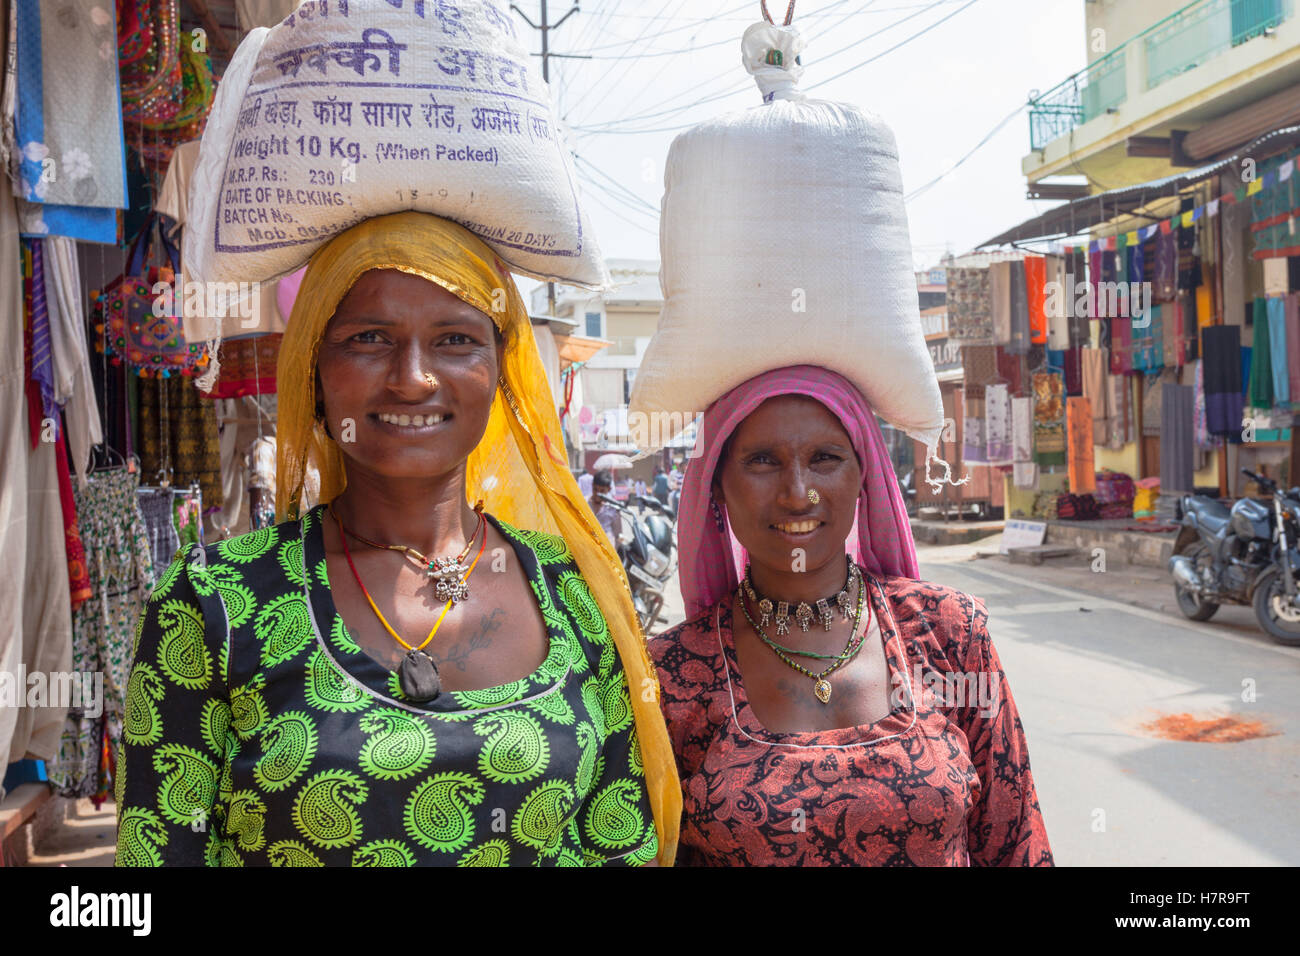 Two women carrying sacks of rice or flour on their heads in the traditional Indian manner, Pushkar, India - Stock Image